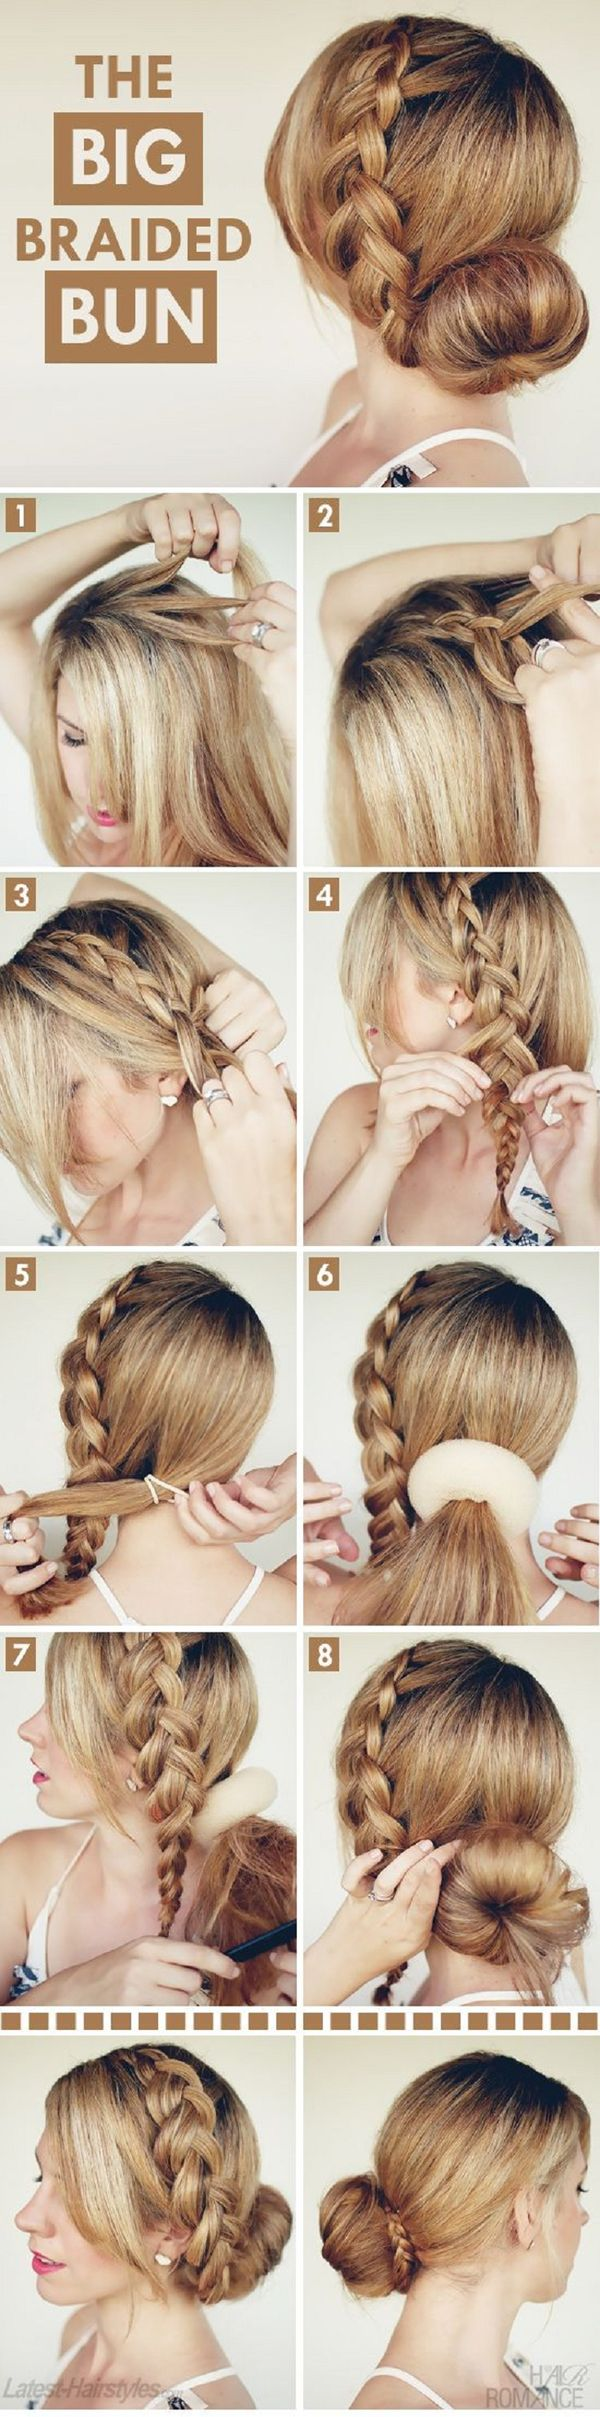 Pin by mafe rodríguez on cabello pinterest